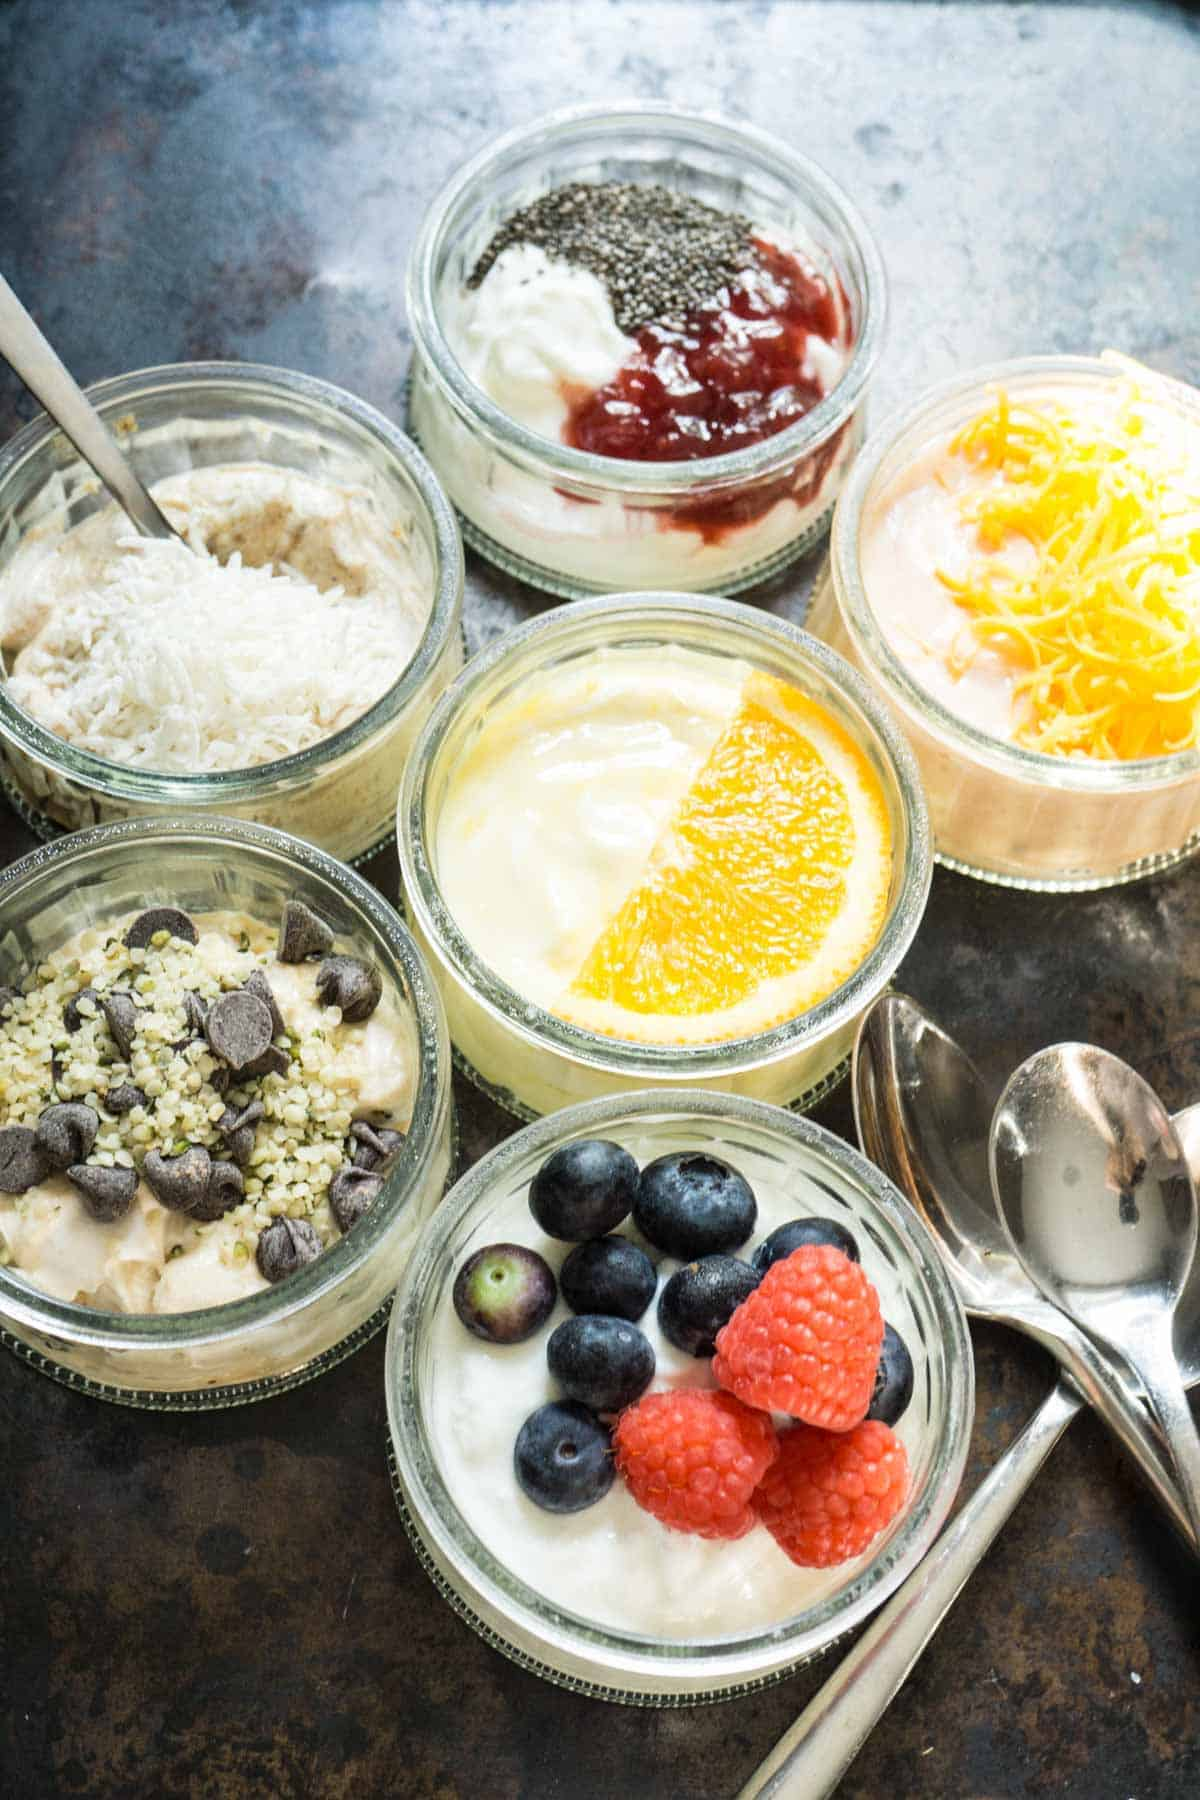 6 ways to flavour plain yogurt